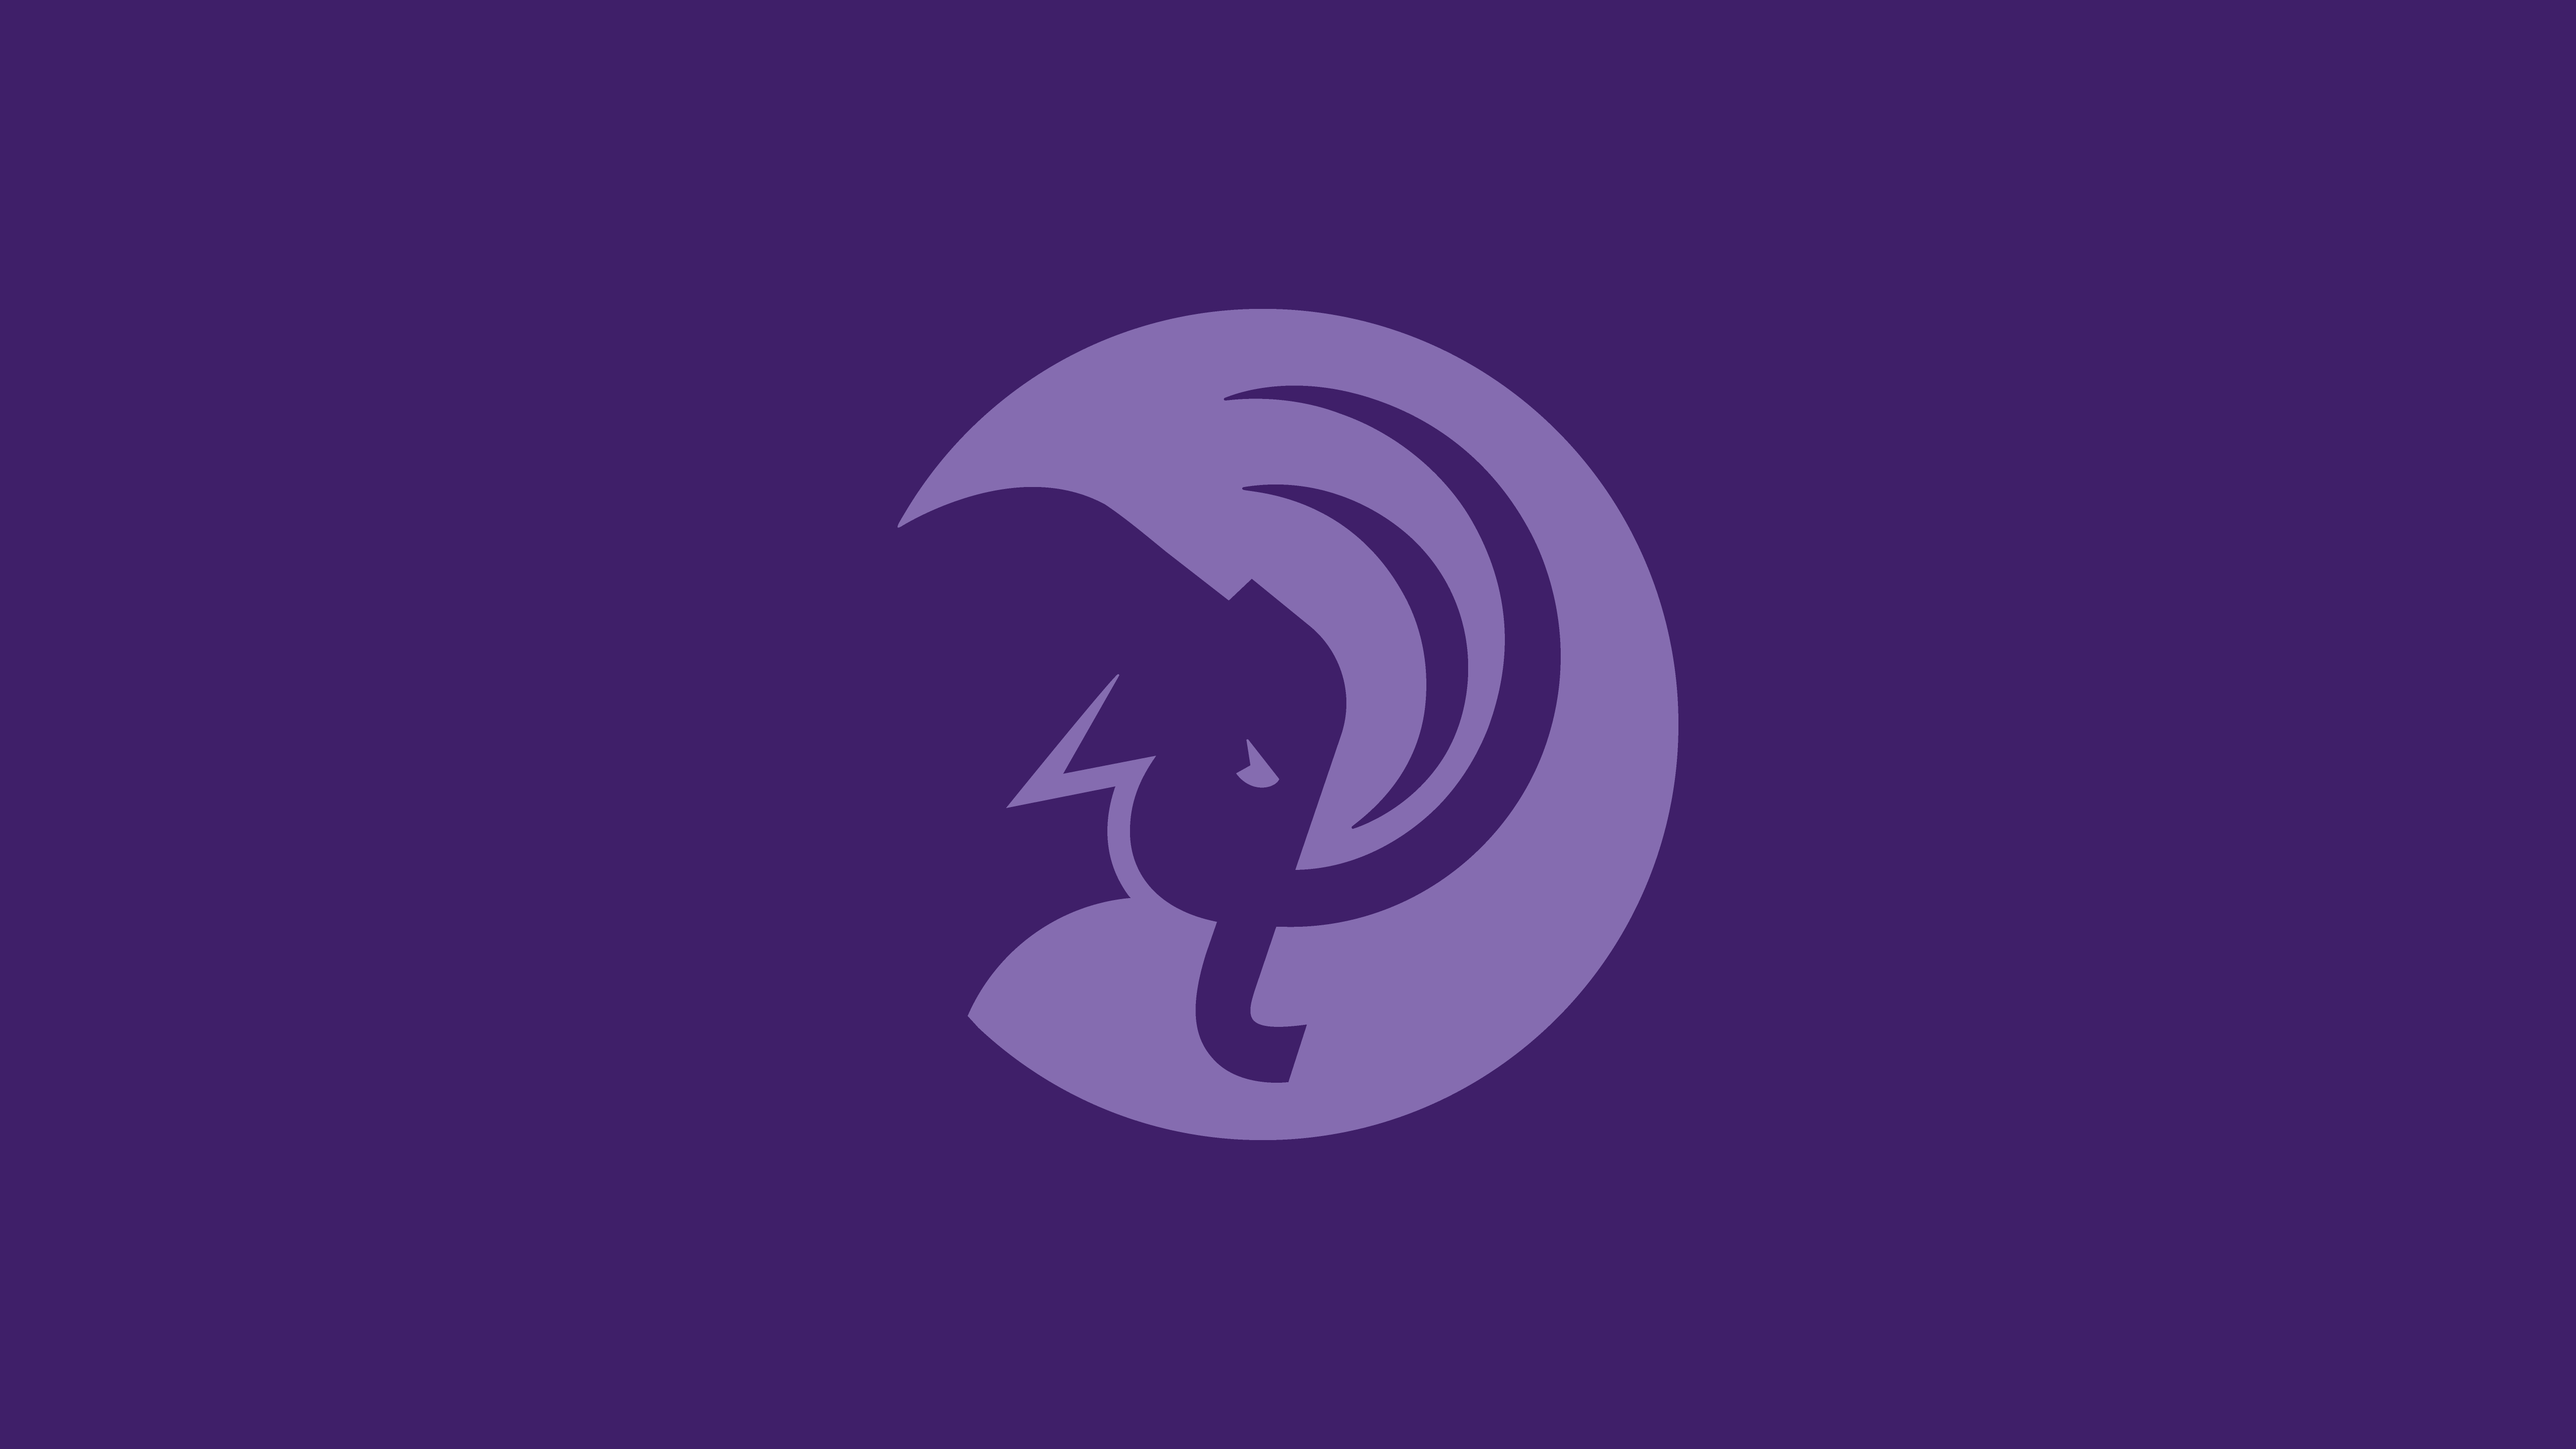 Light purple mammoth head circular logo on dark purple background